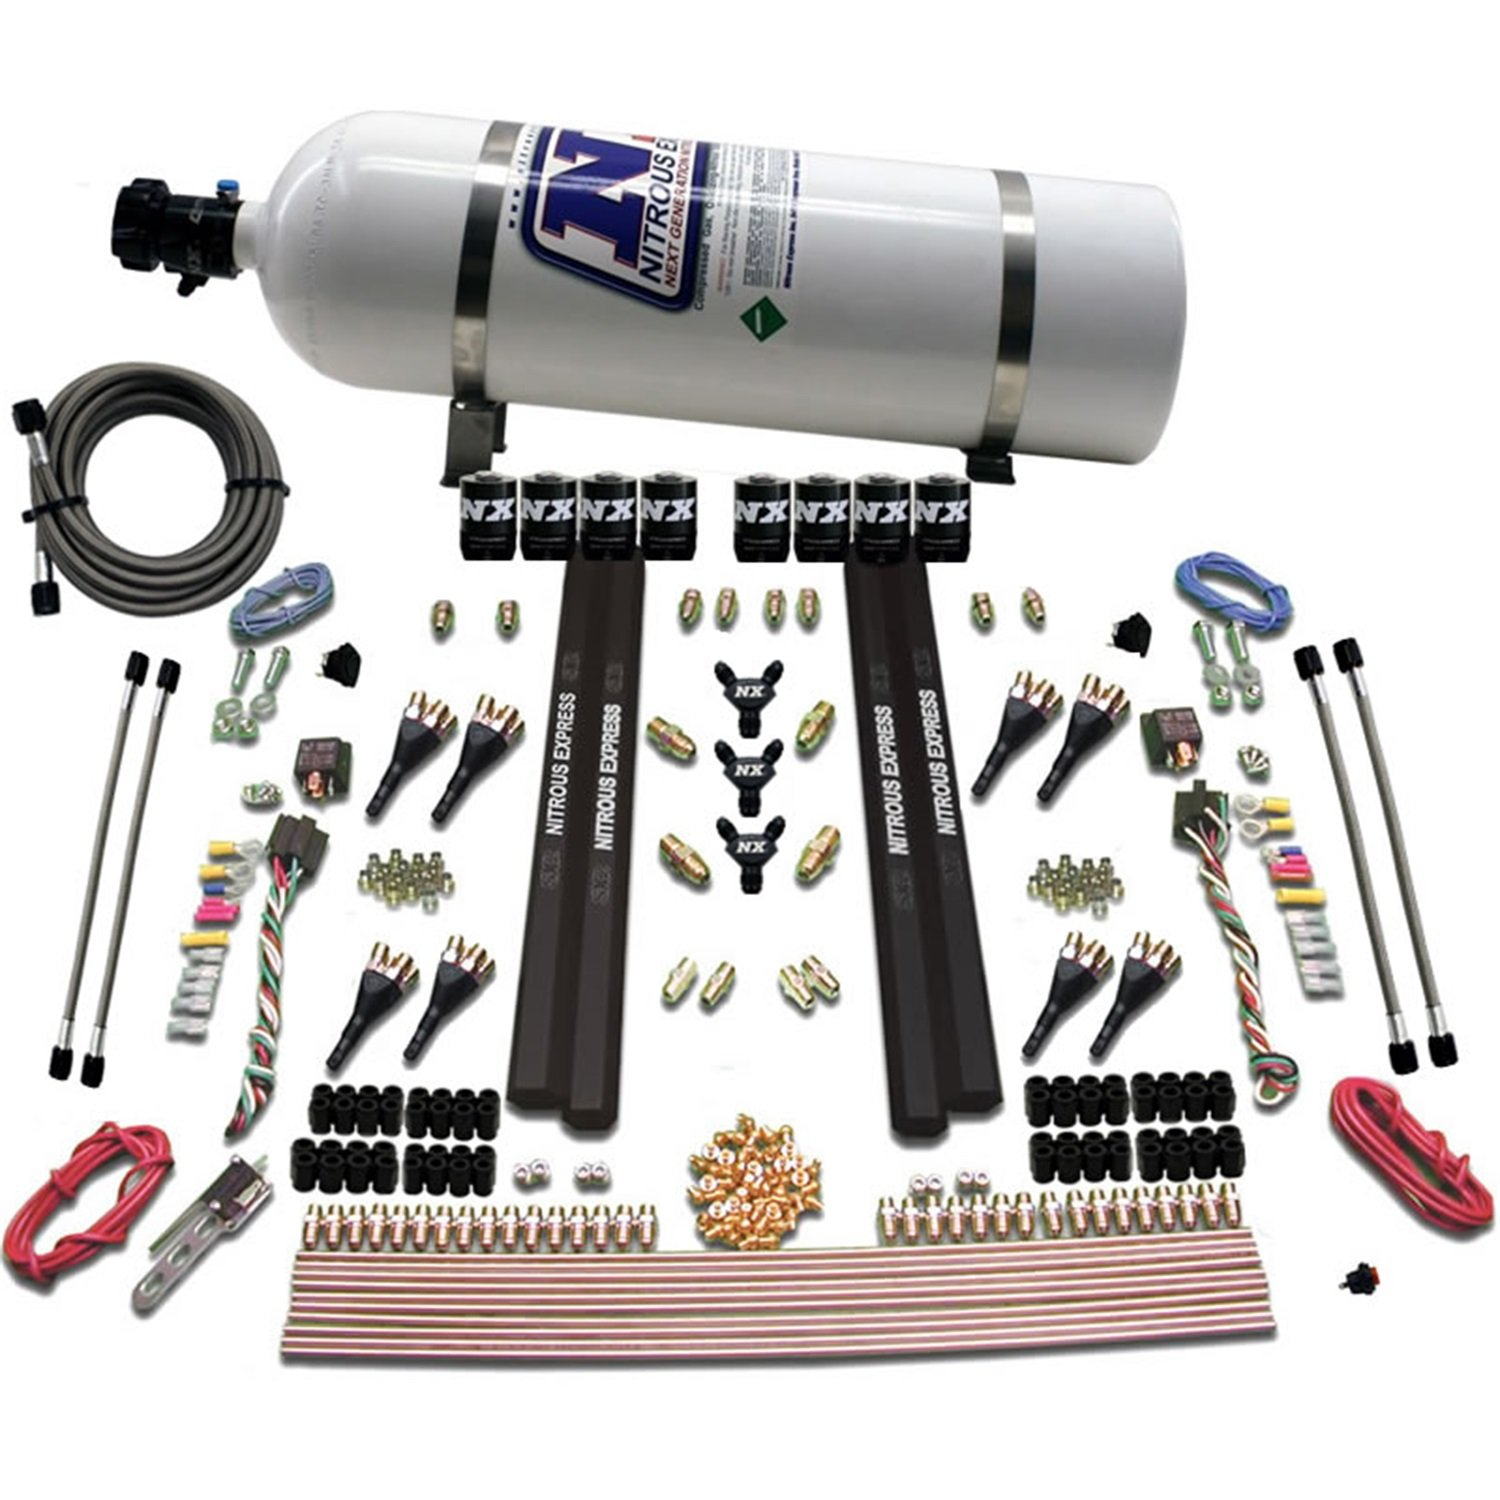 Bottle Nitrous Express 90009-15 200-1200 HP 8-Cylinder SX2 Direct Port System with 8 Solenoids and 15 lbs